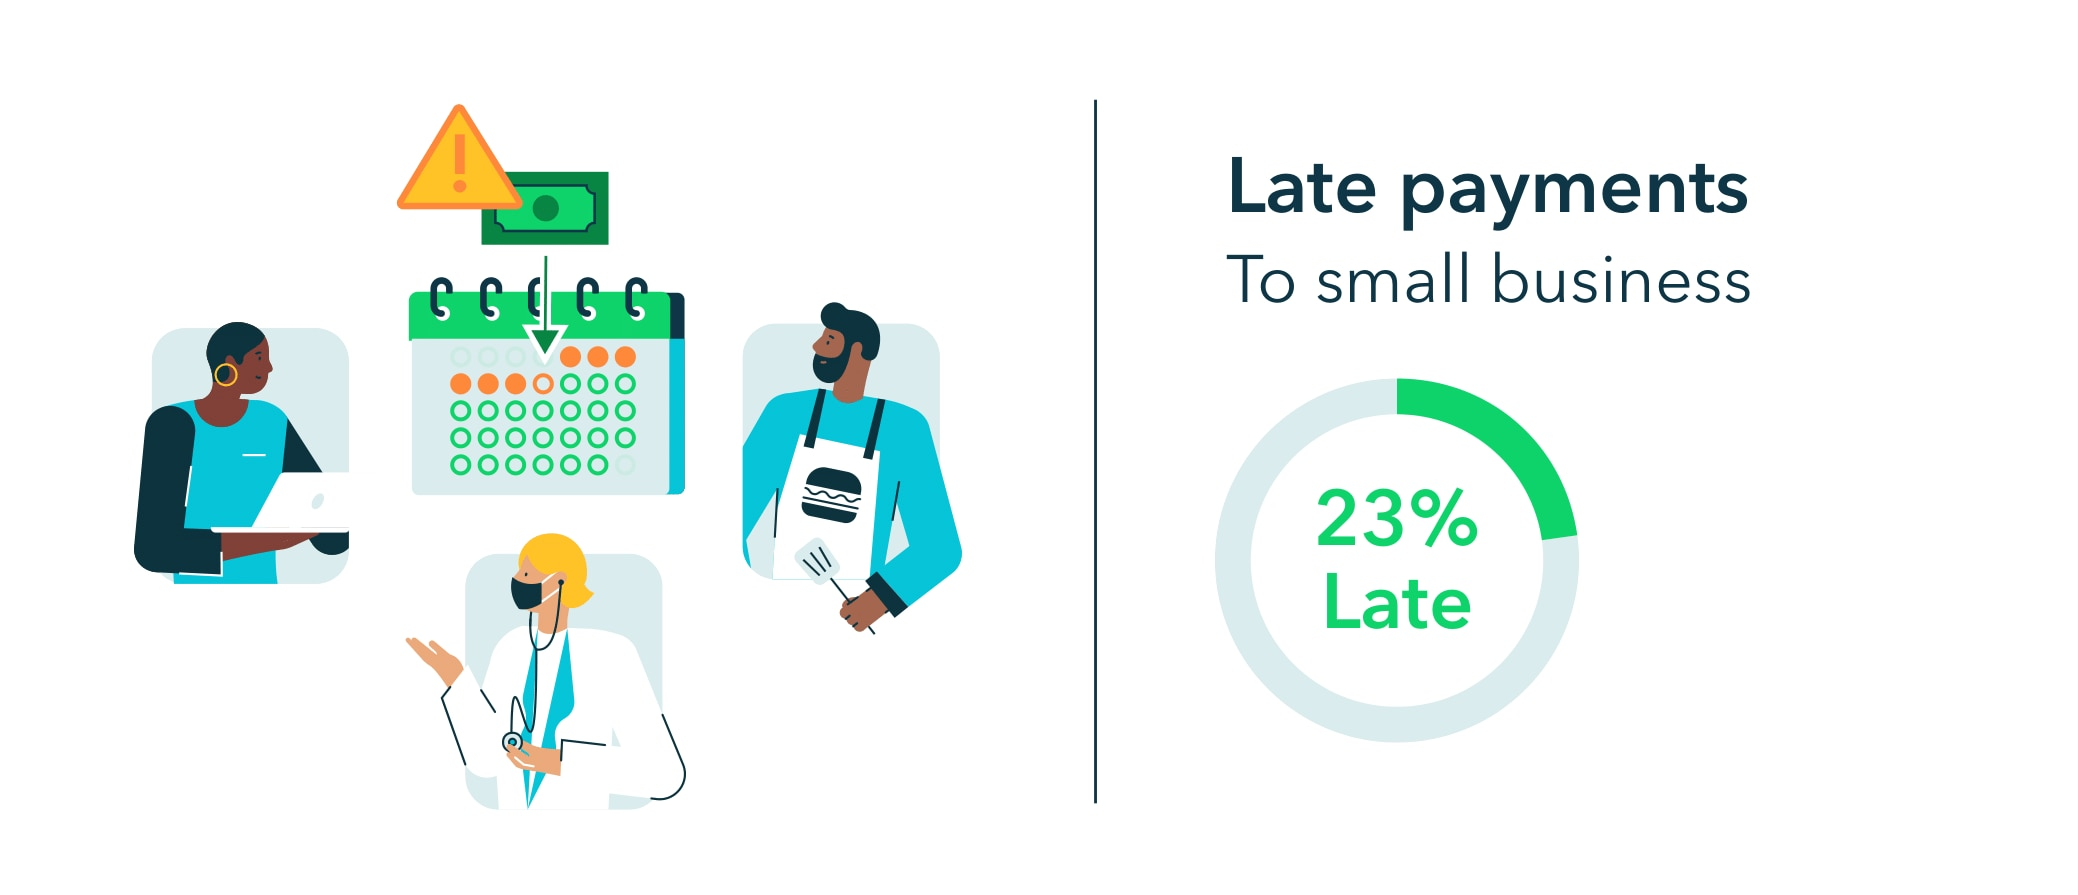 23% of payments to small businesses are late.